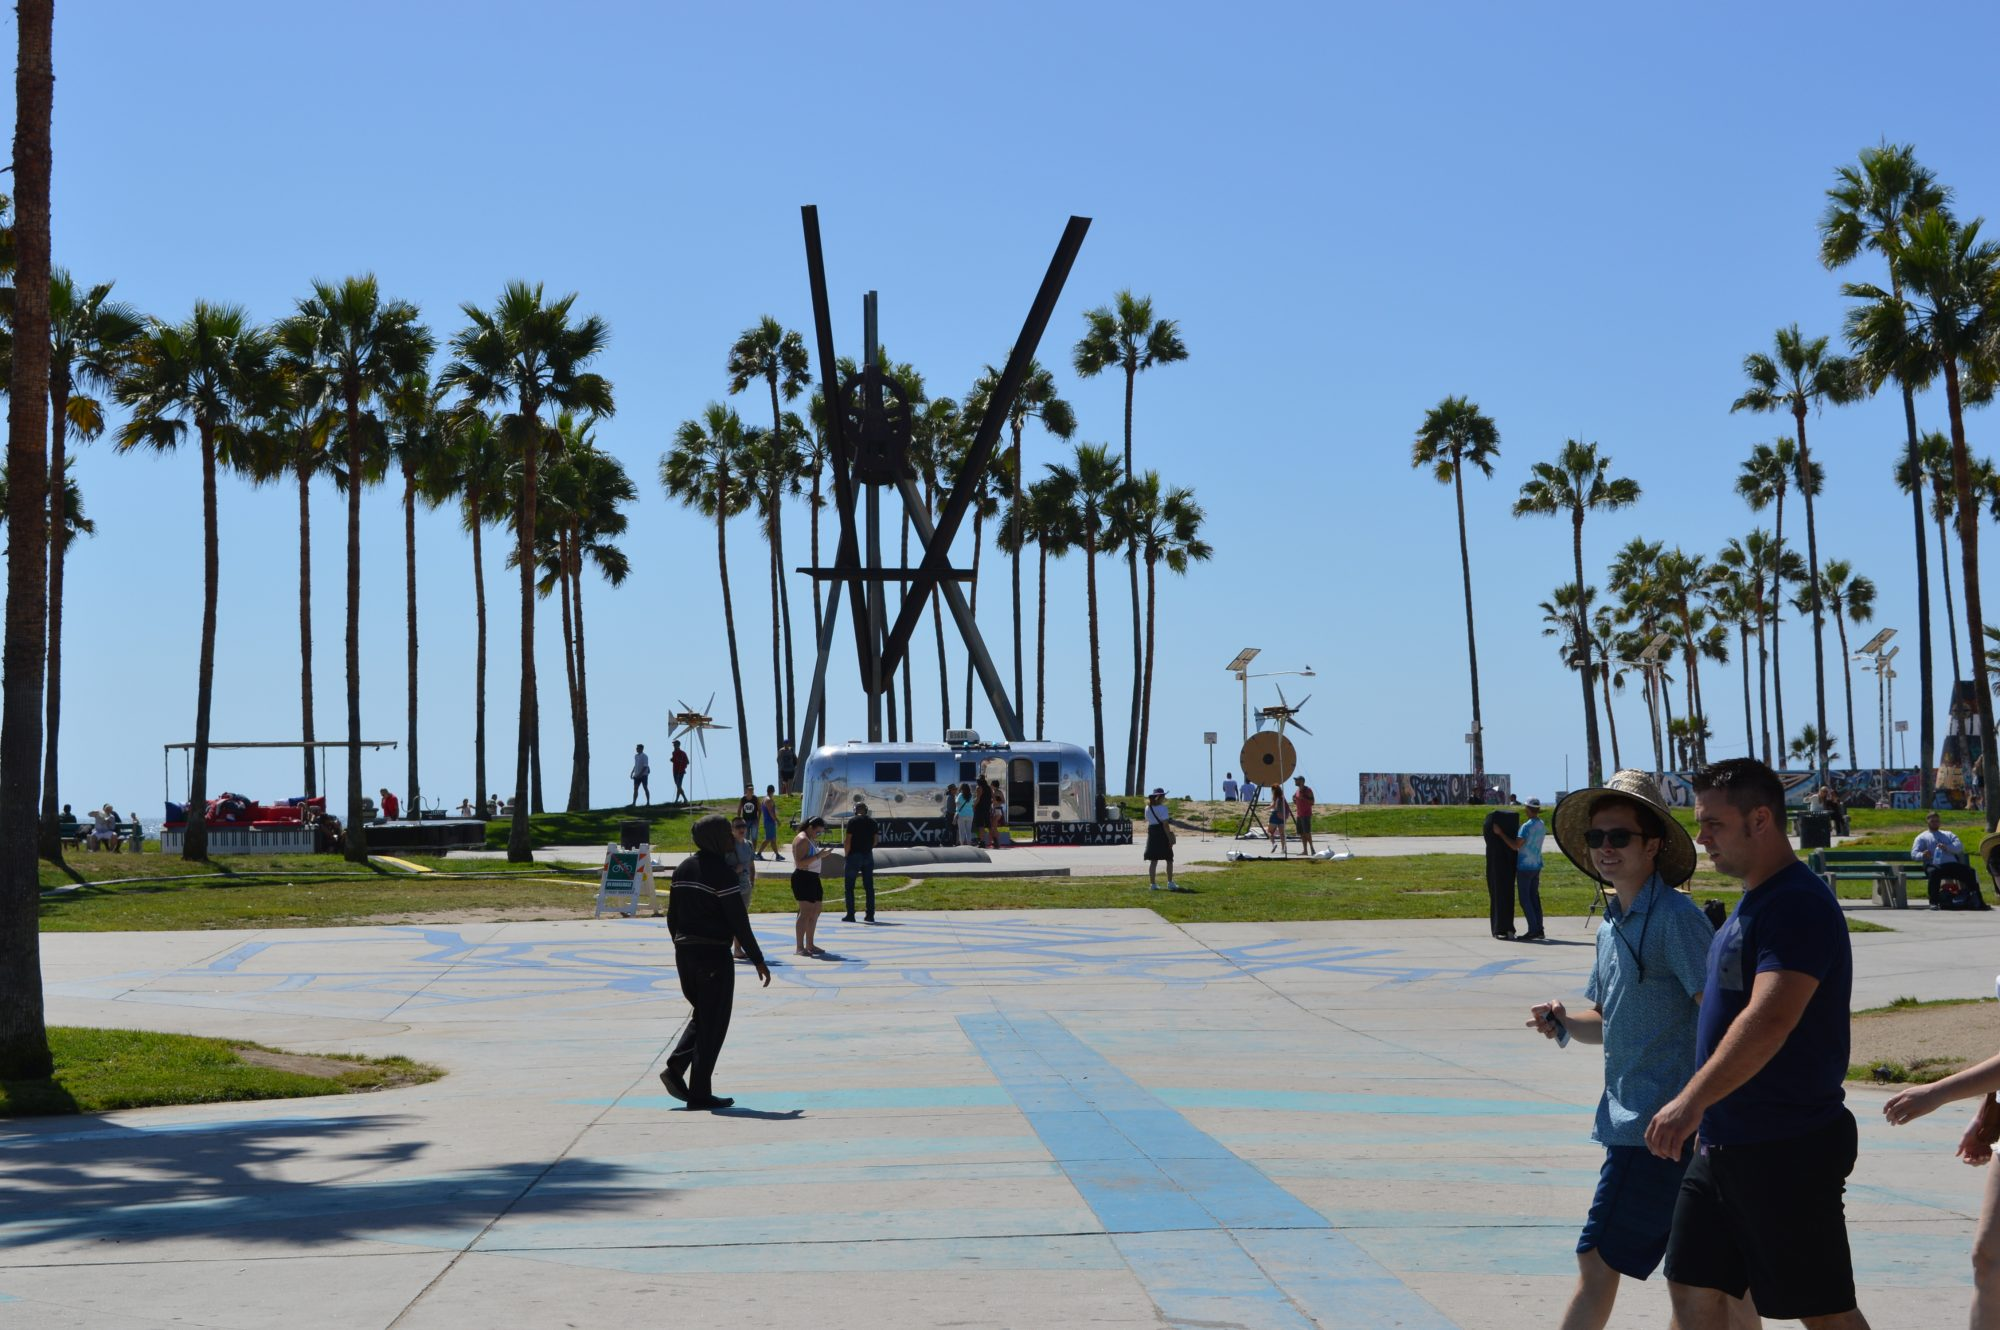 Venice beach board walk